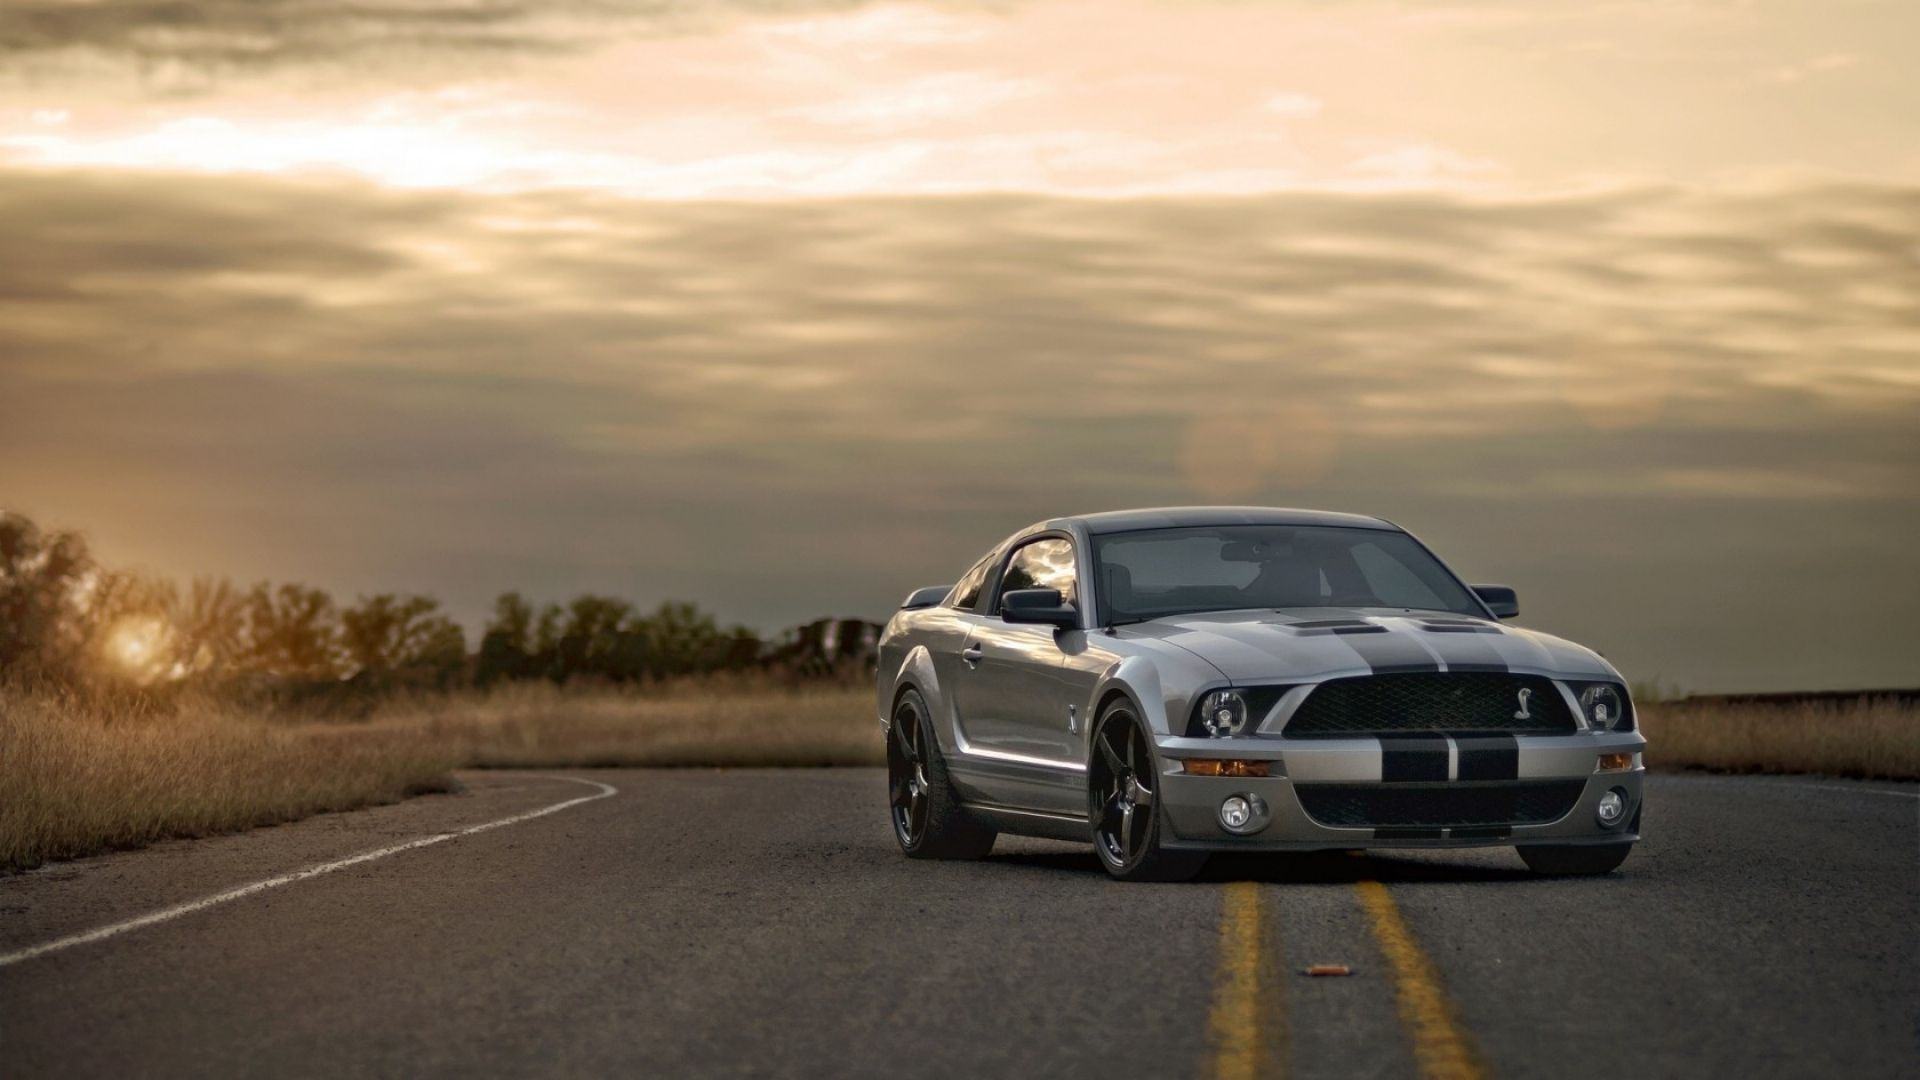 Download Wallpaper 1920x1080 Ford Mustang Shelby Gt350 Auto Full Hd 1080p Hd Background Ford Mustang Mustang Shelby Cobra Mustang